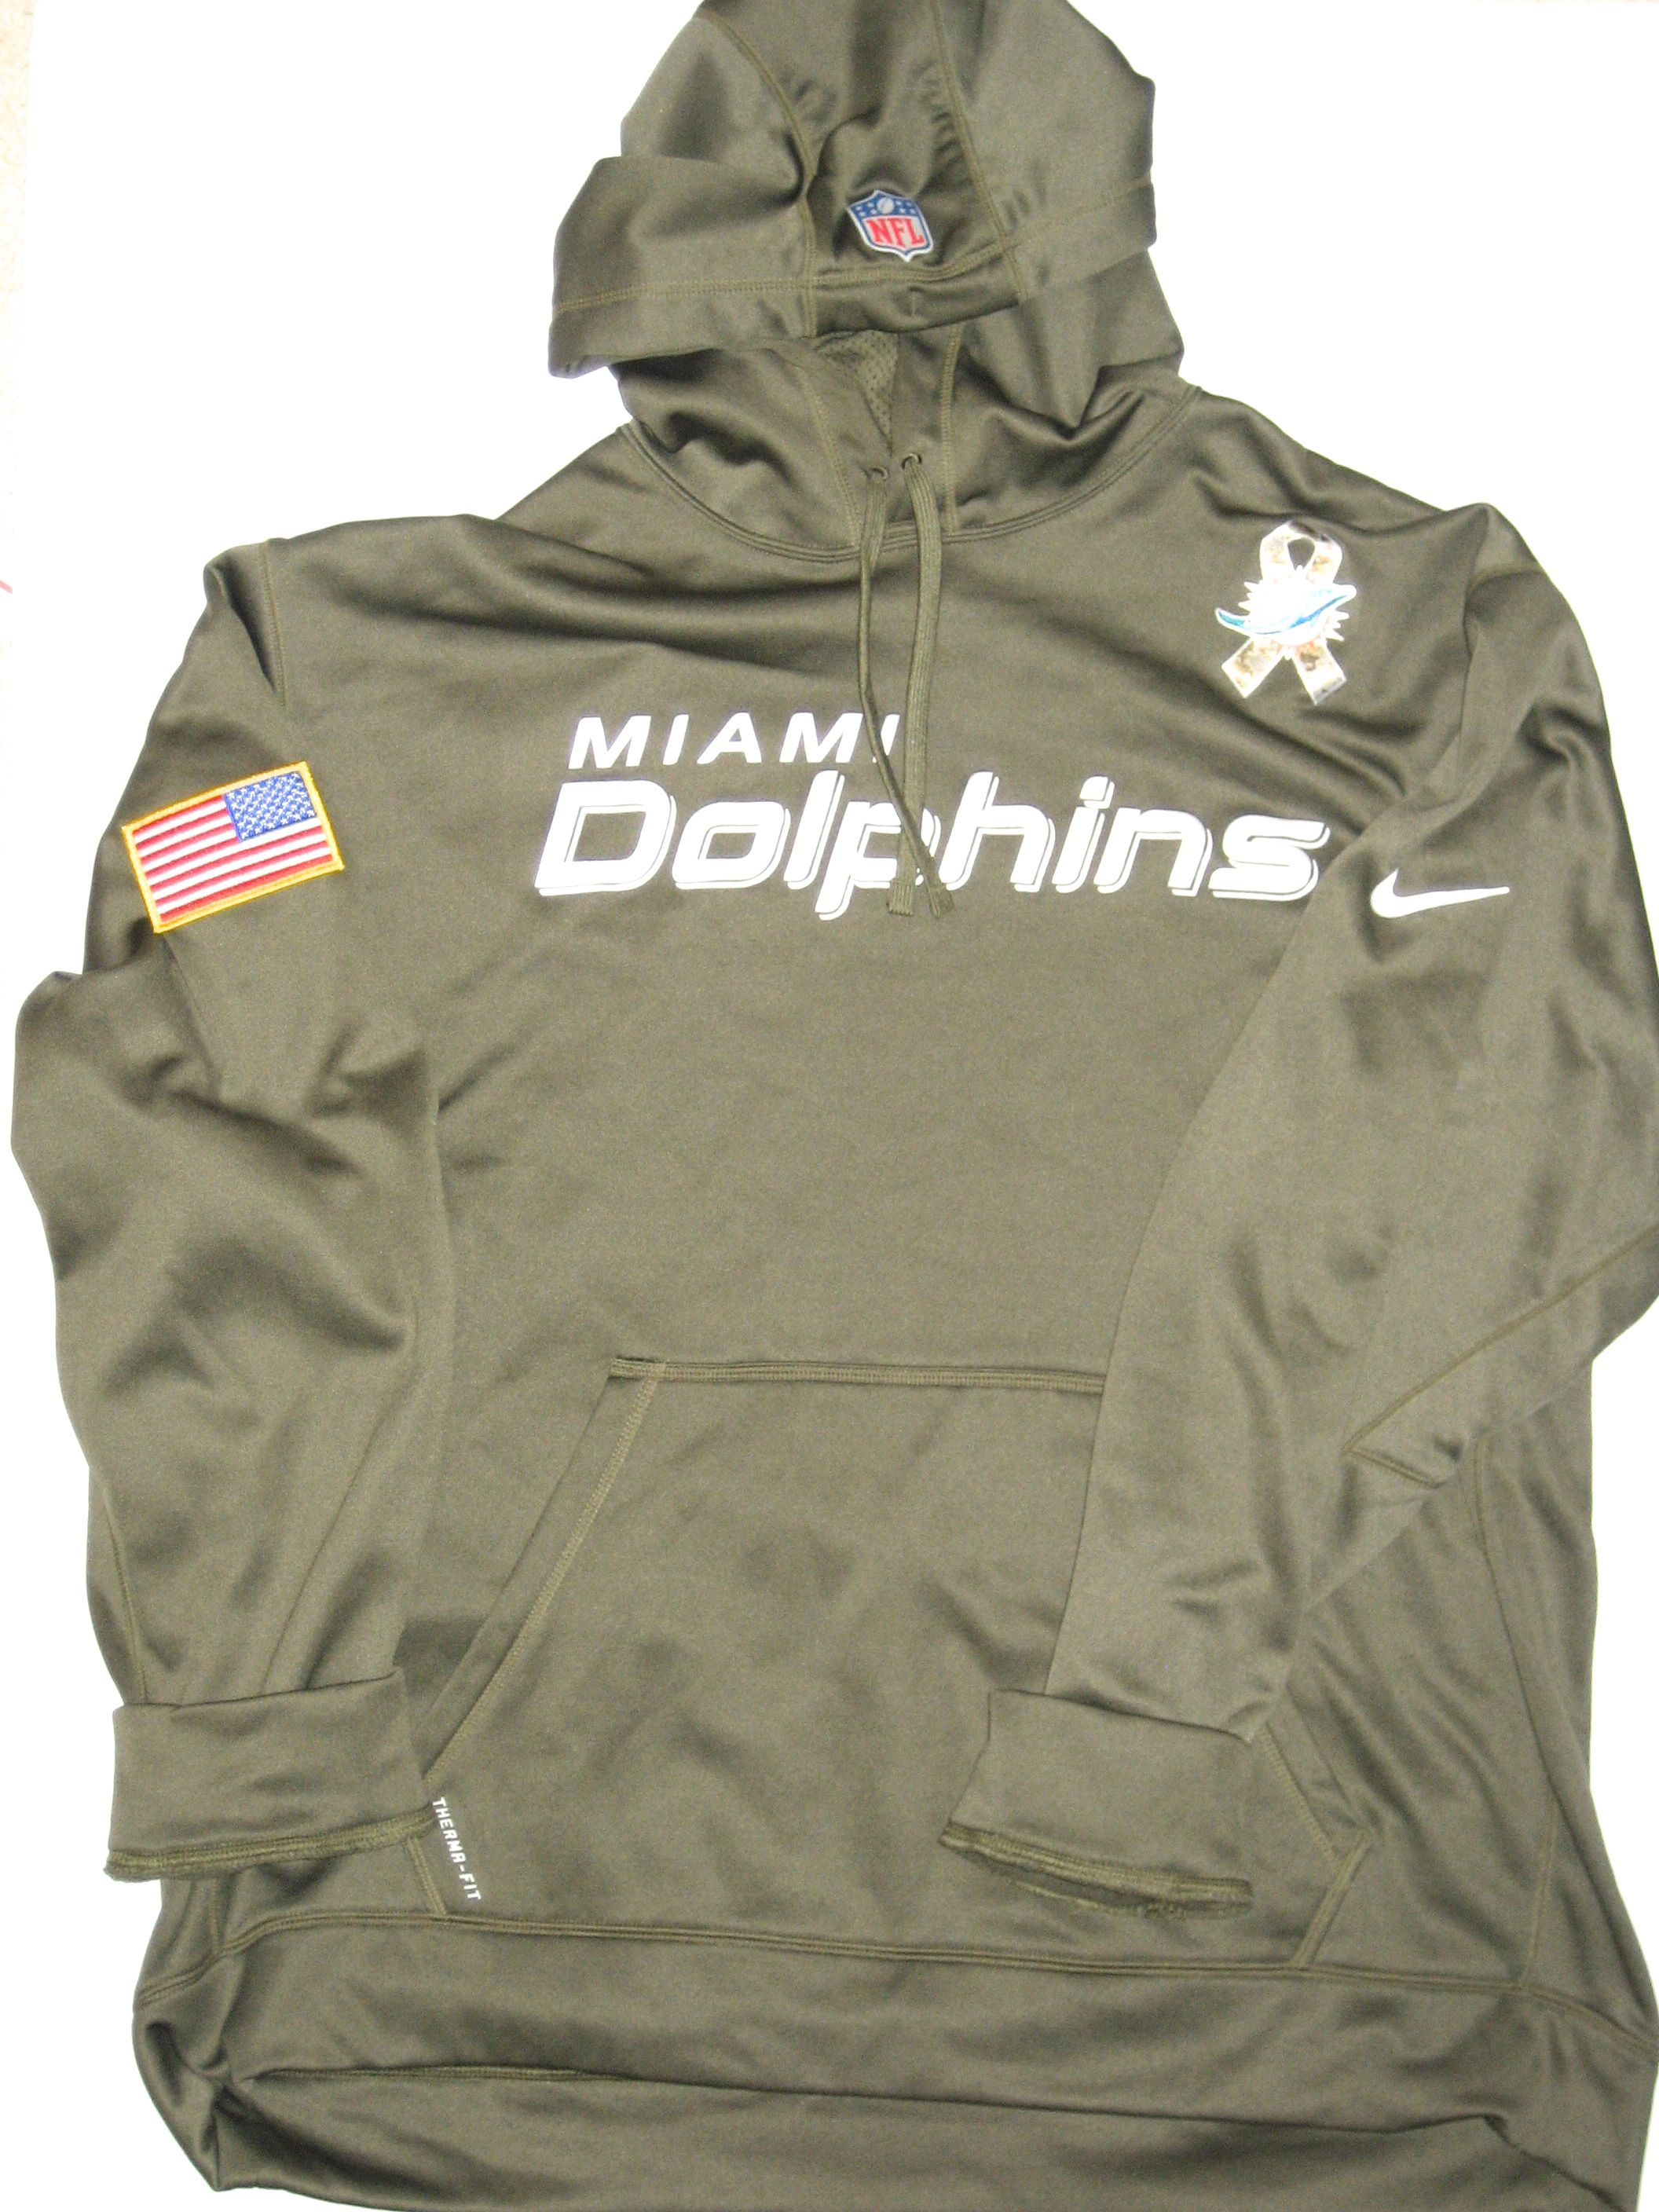 8724c4de6 AJ Francis Player Issued Miami Dolphins  96 Salute to Service Nike 3XL  Hoodie